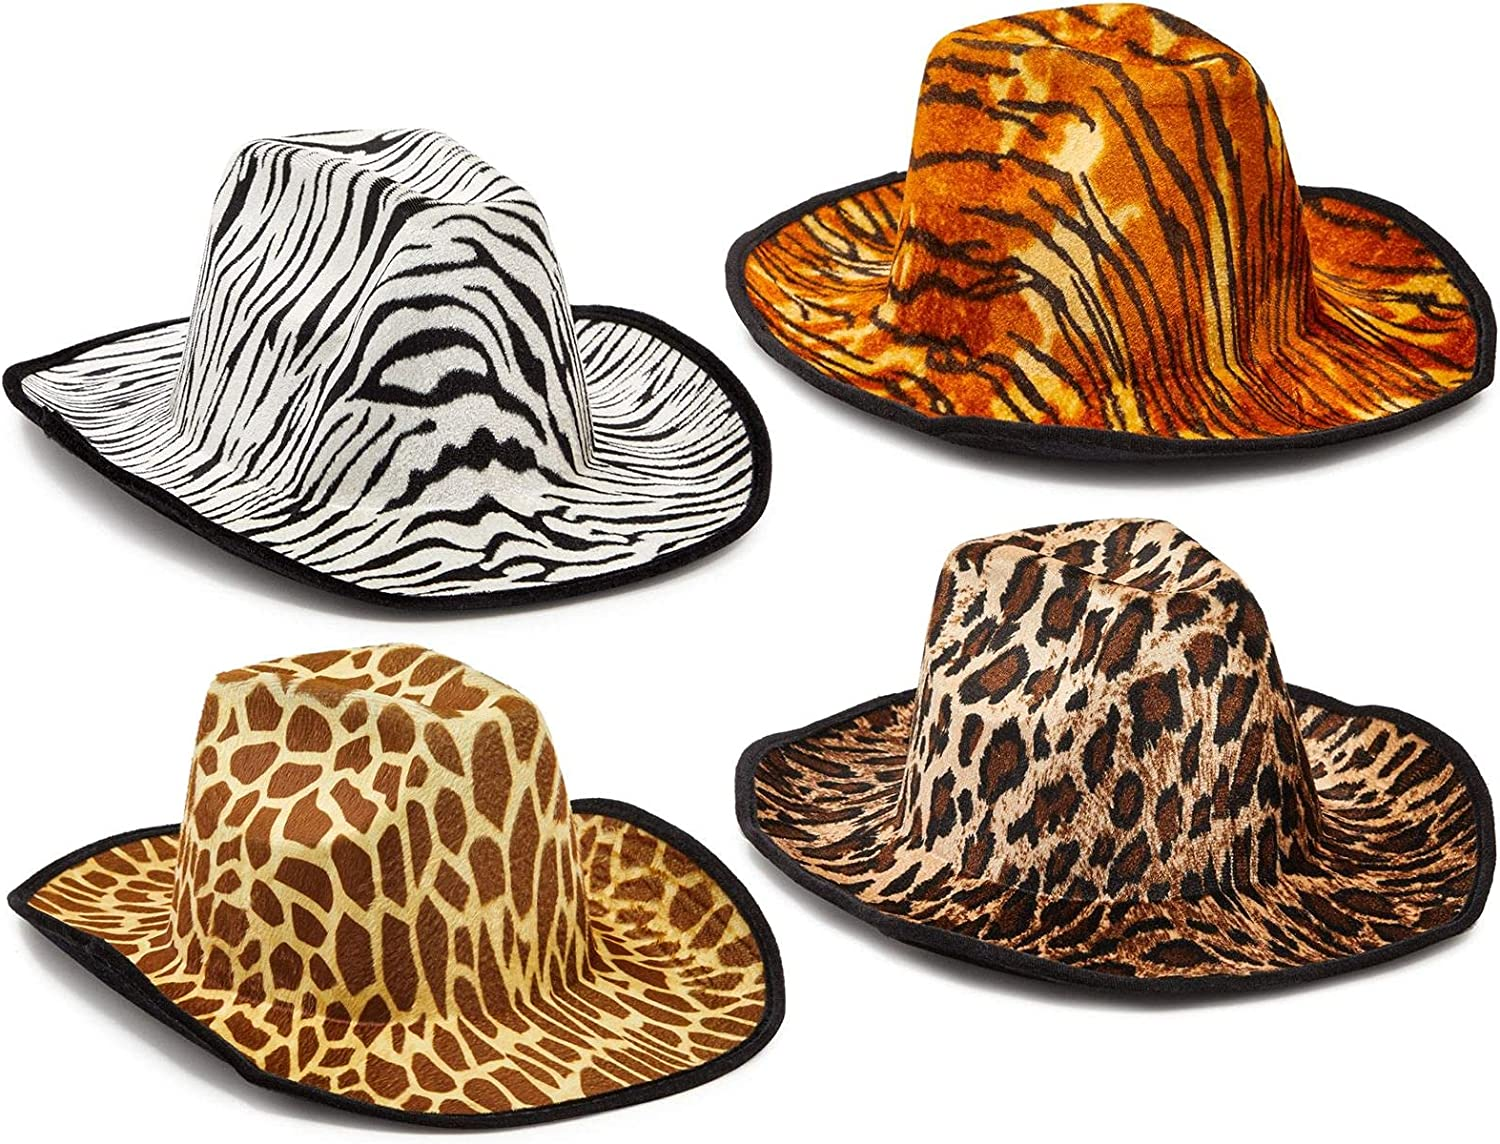 Zodaca Safari Cowboy Party Hats for Adults, Jungle Costume Accessories (One Size, 4 Pack)